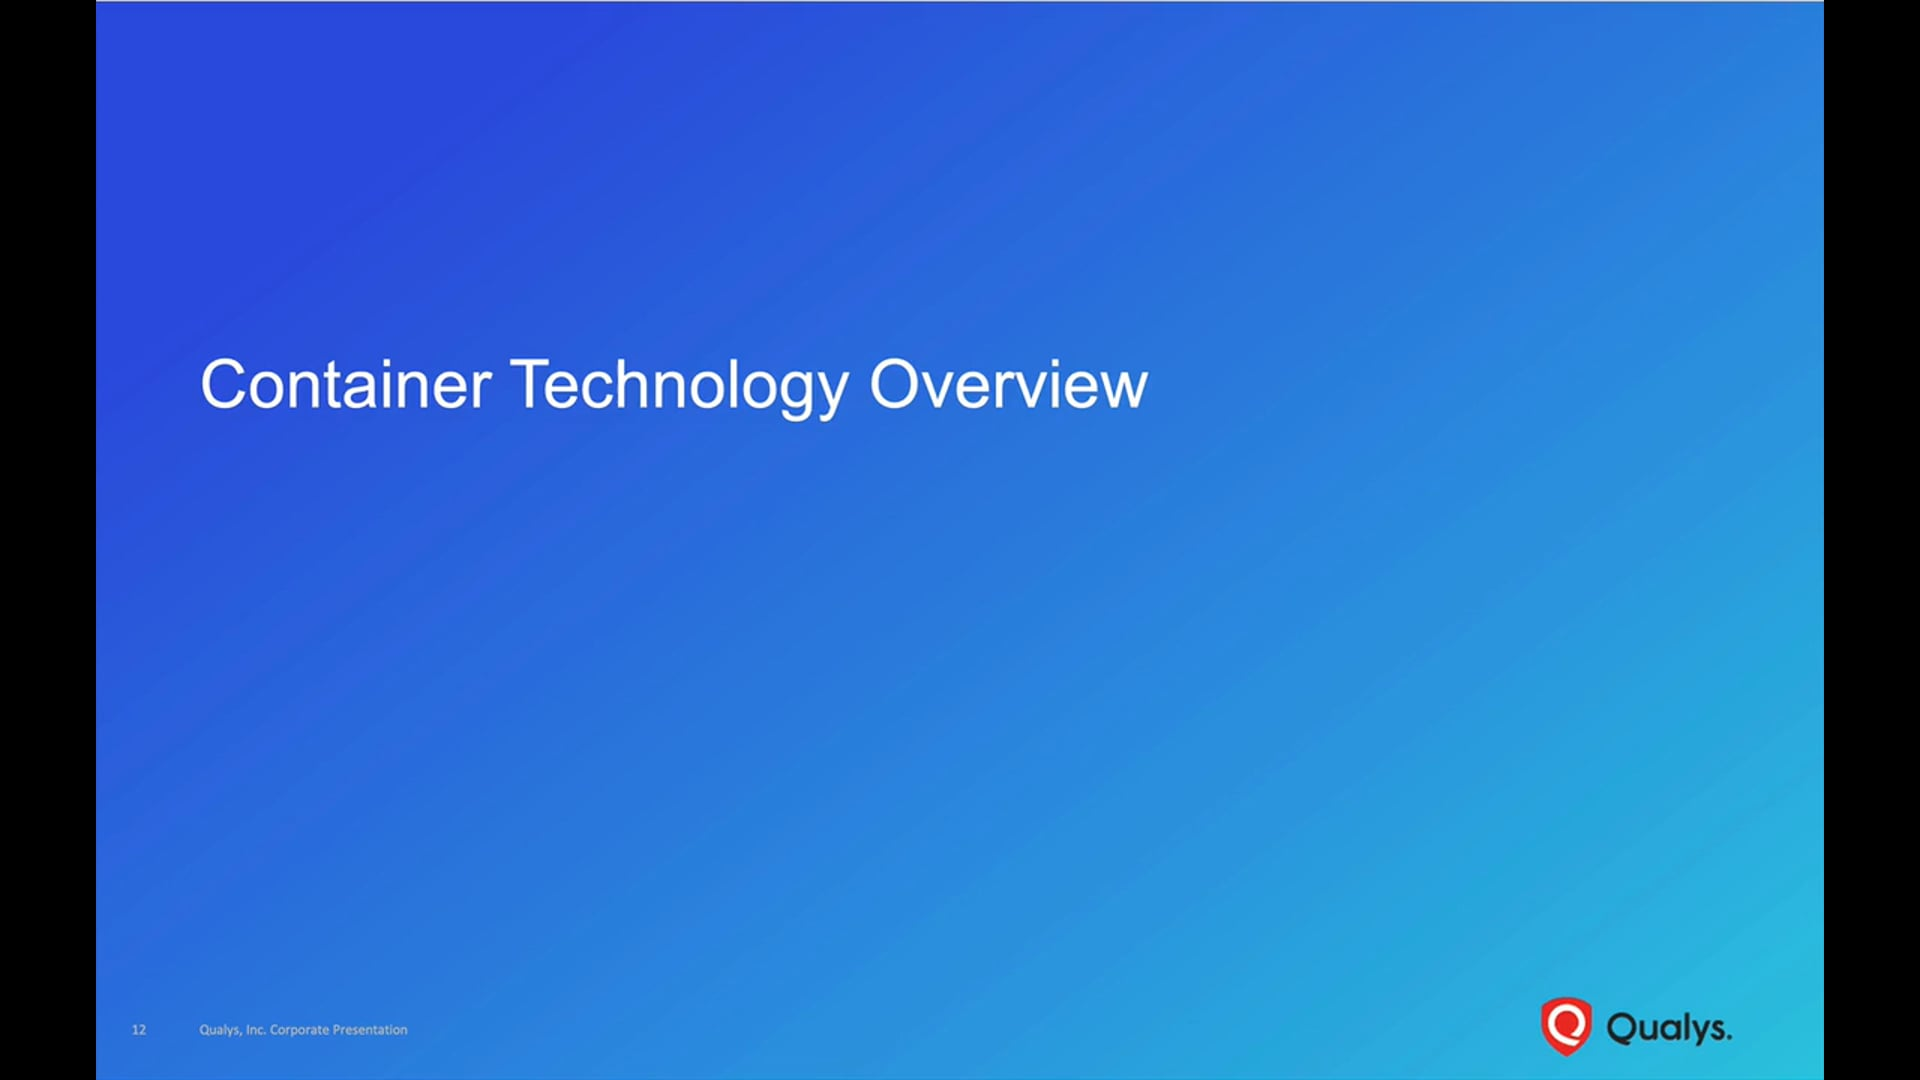 Container Technology Overview